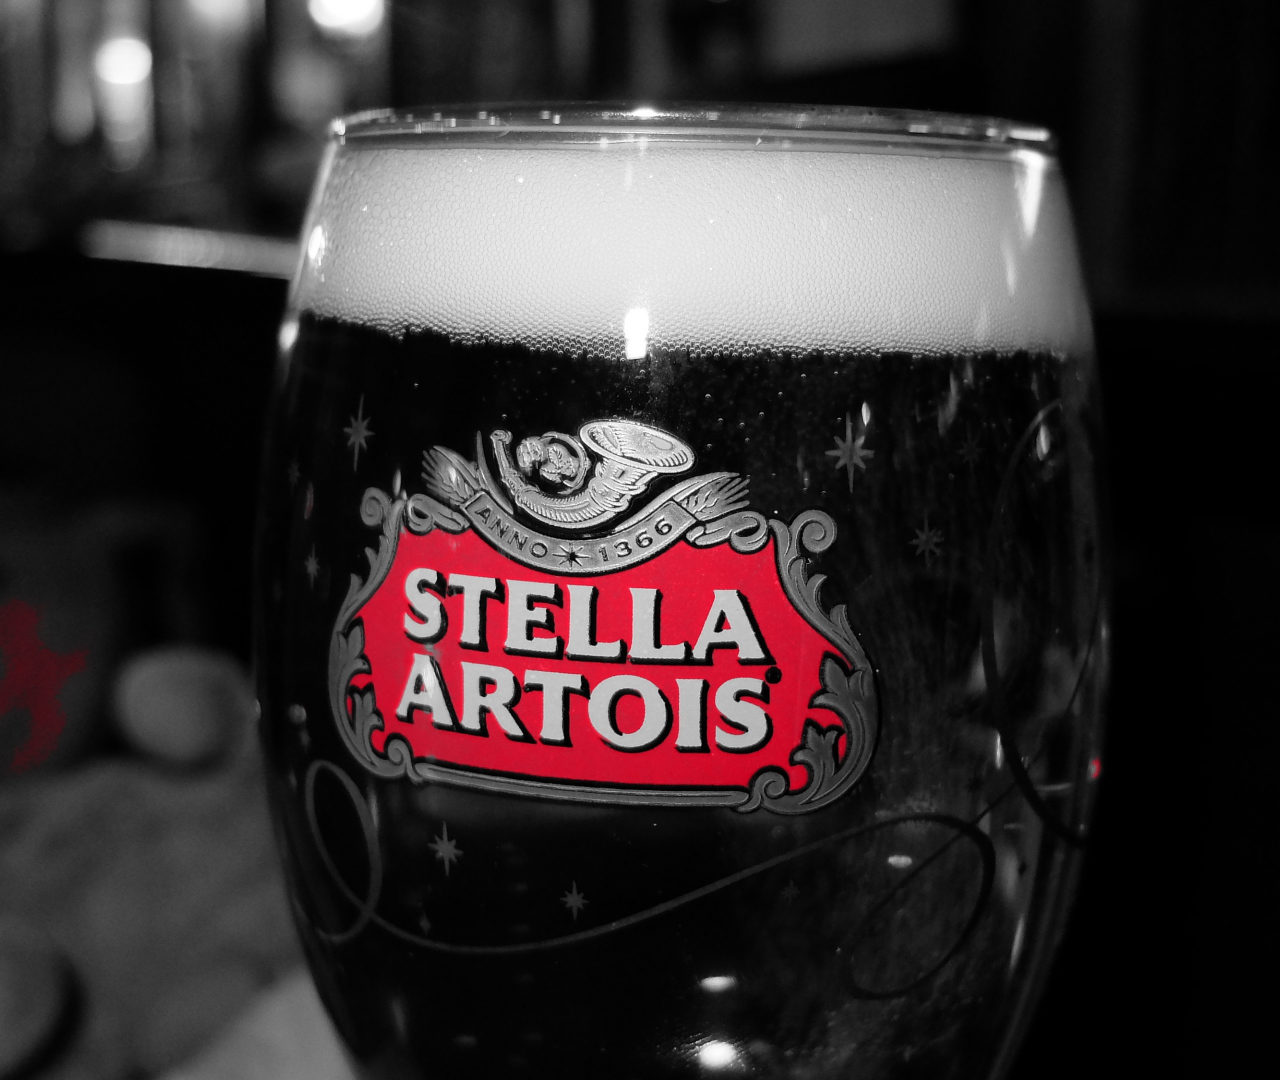 Stella Artois Alcohol Content >> Stella artois, Beer, Alcohol, Glass Full HD Wallpapers | HD Wallpapers